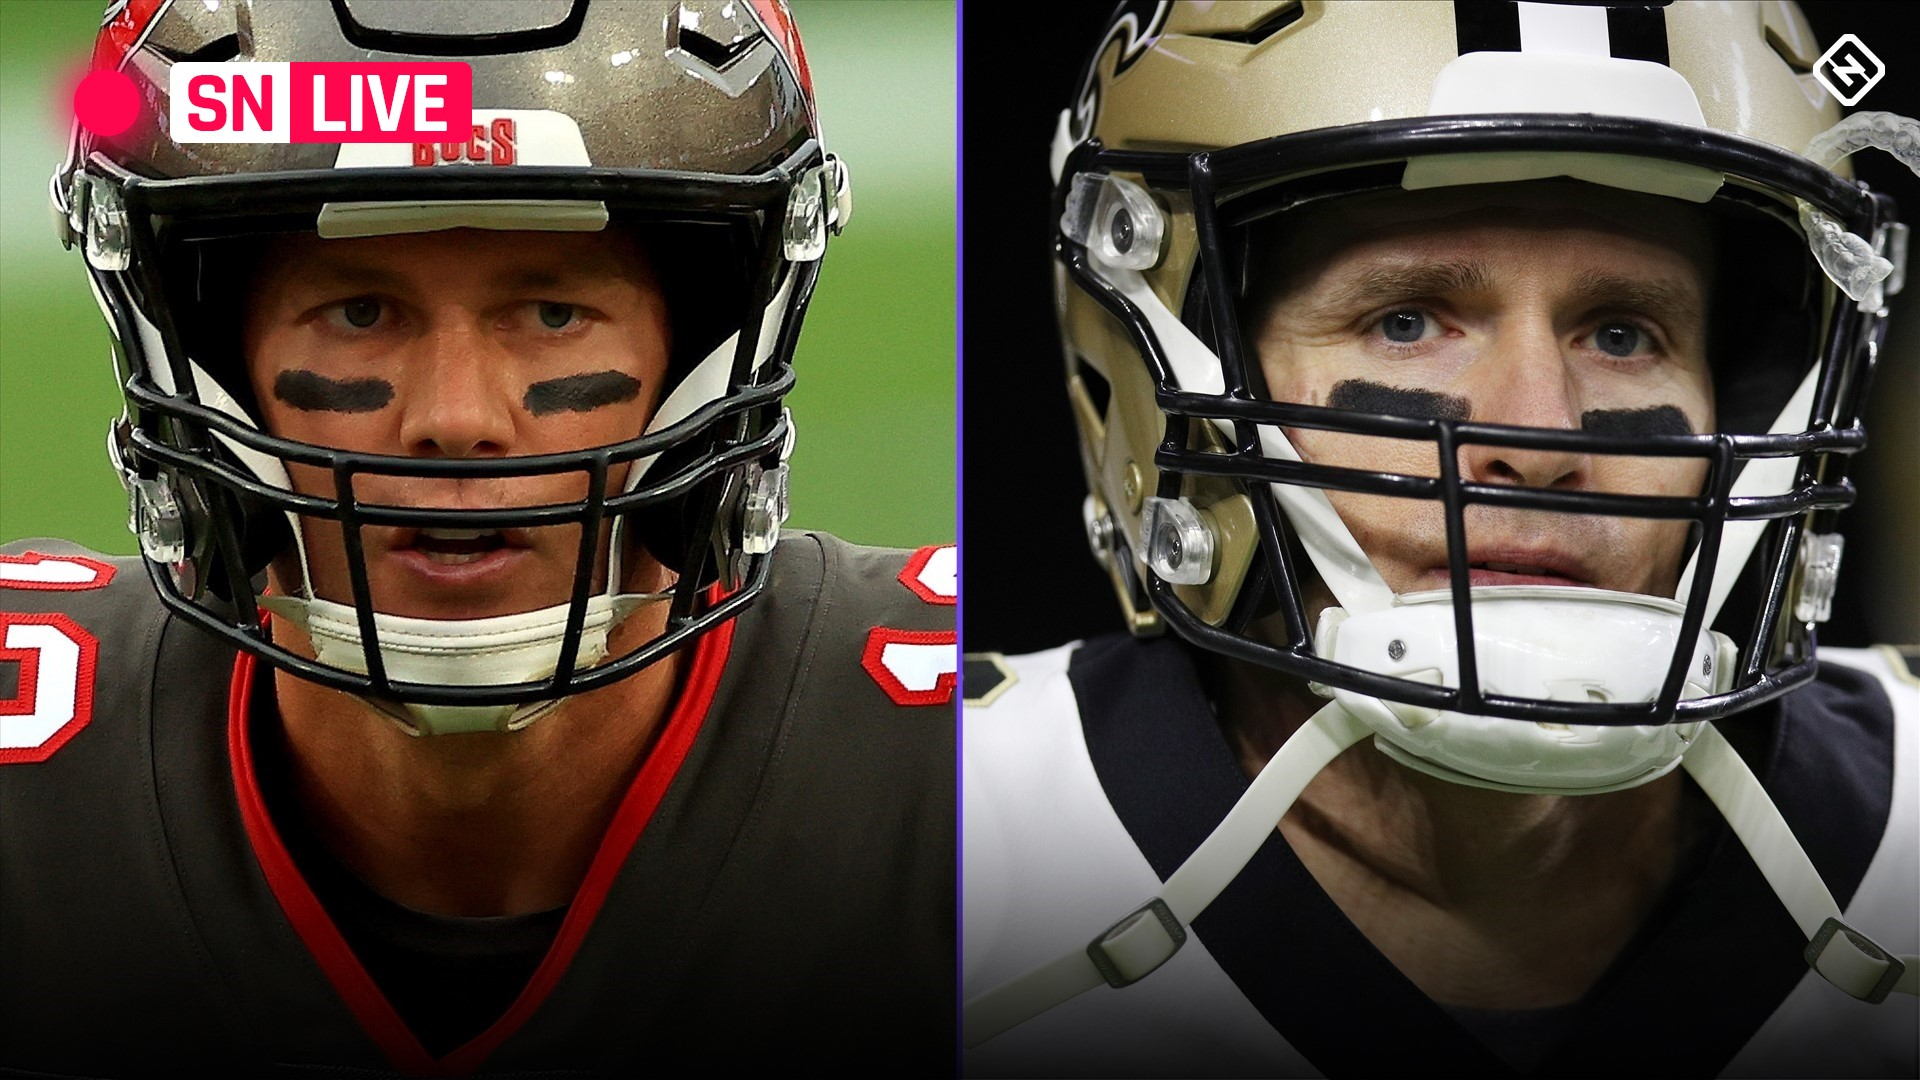 Saints vs Buccaneers live score updates highlights from NFL divisional playoff game